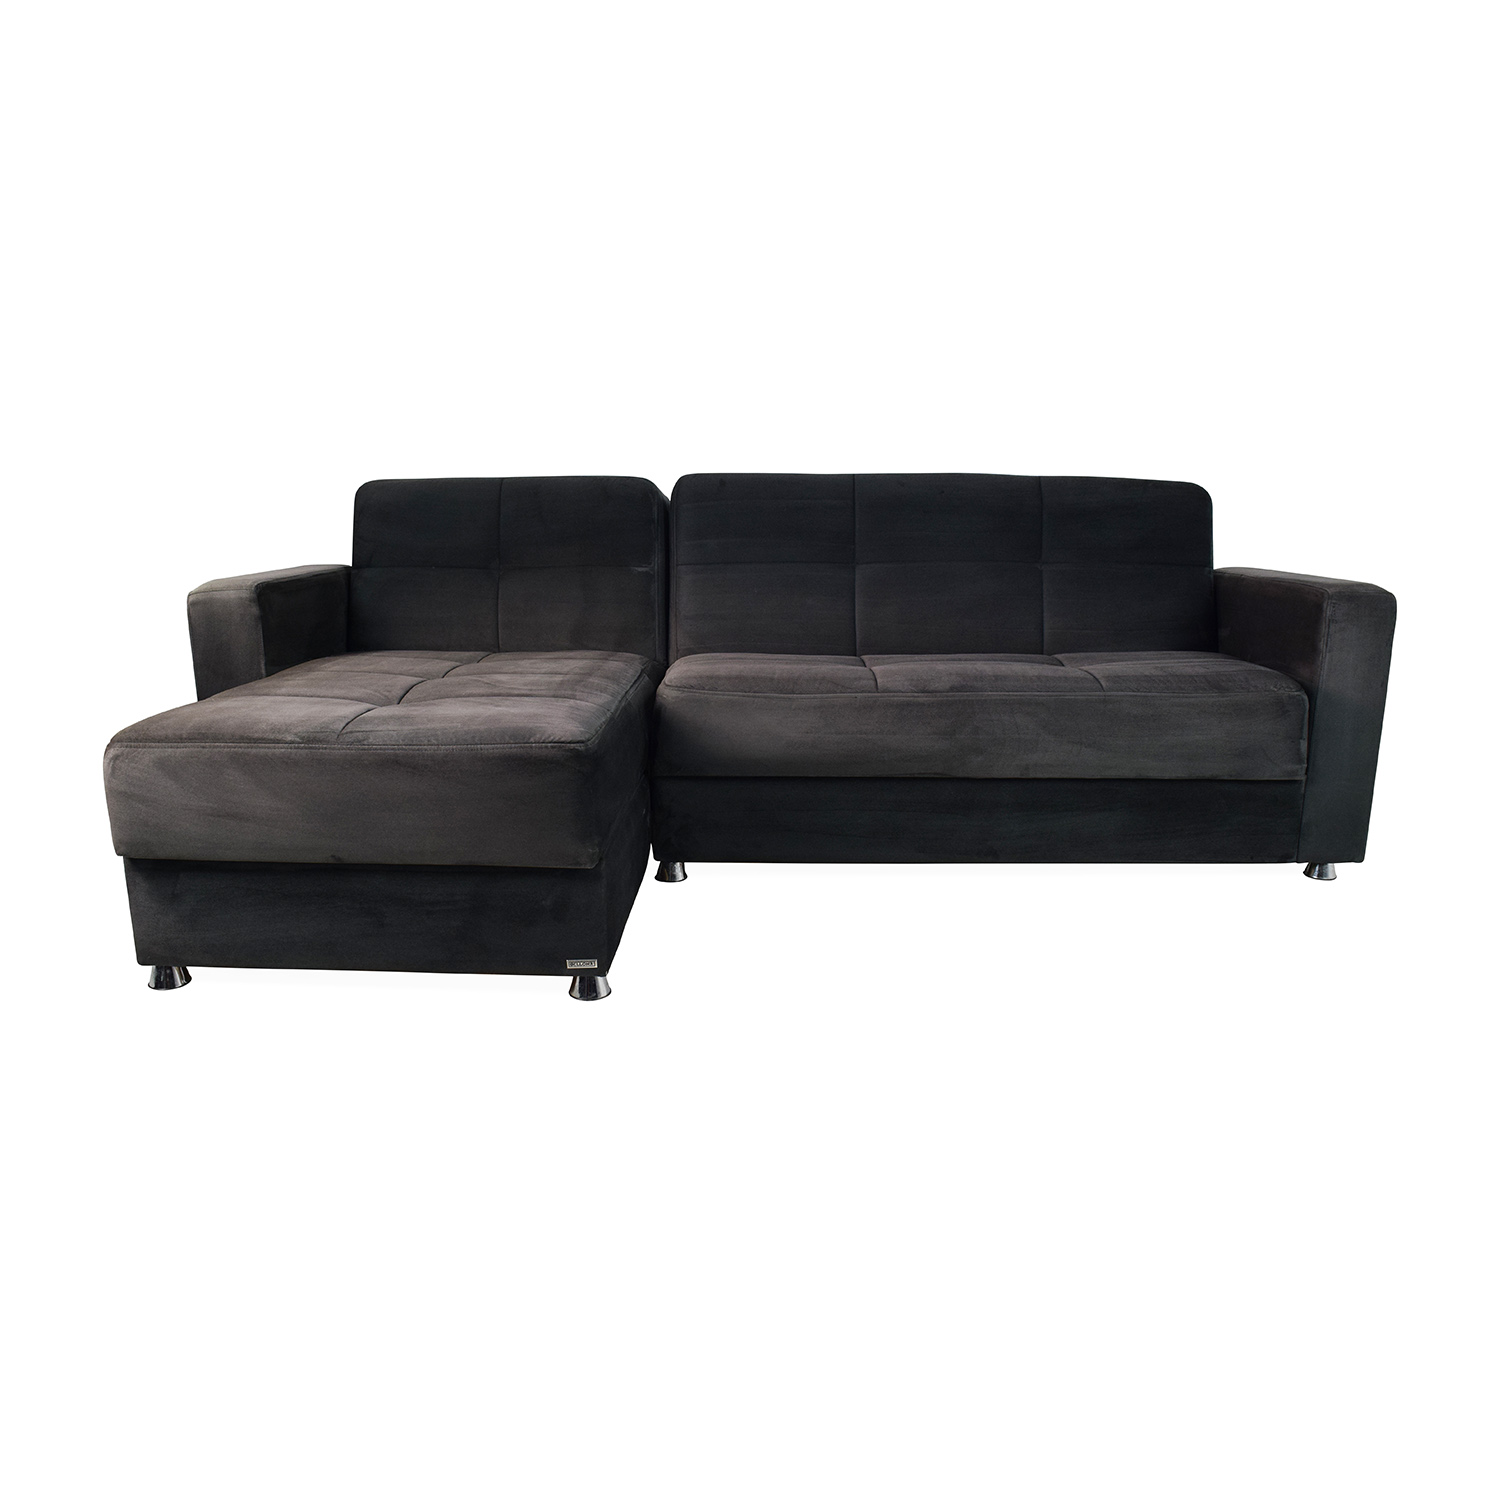 delta storage sofa bed single armchair sofas with 2 options for ownsize